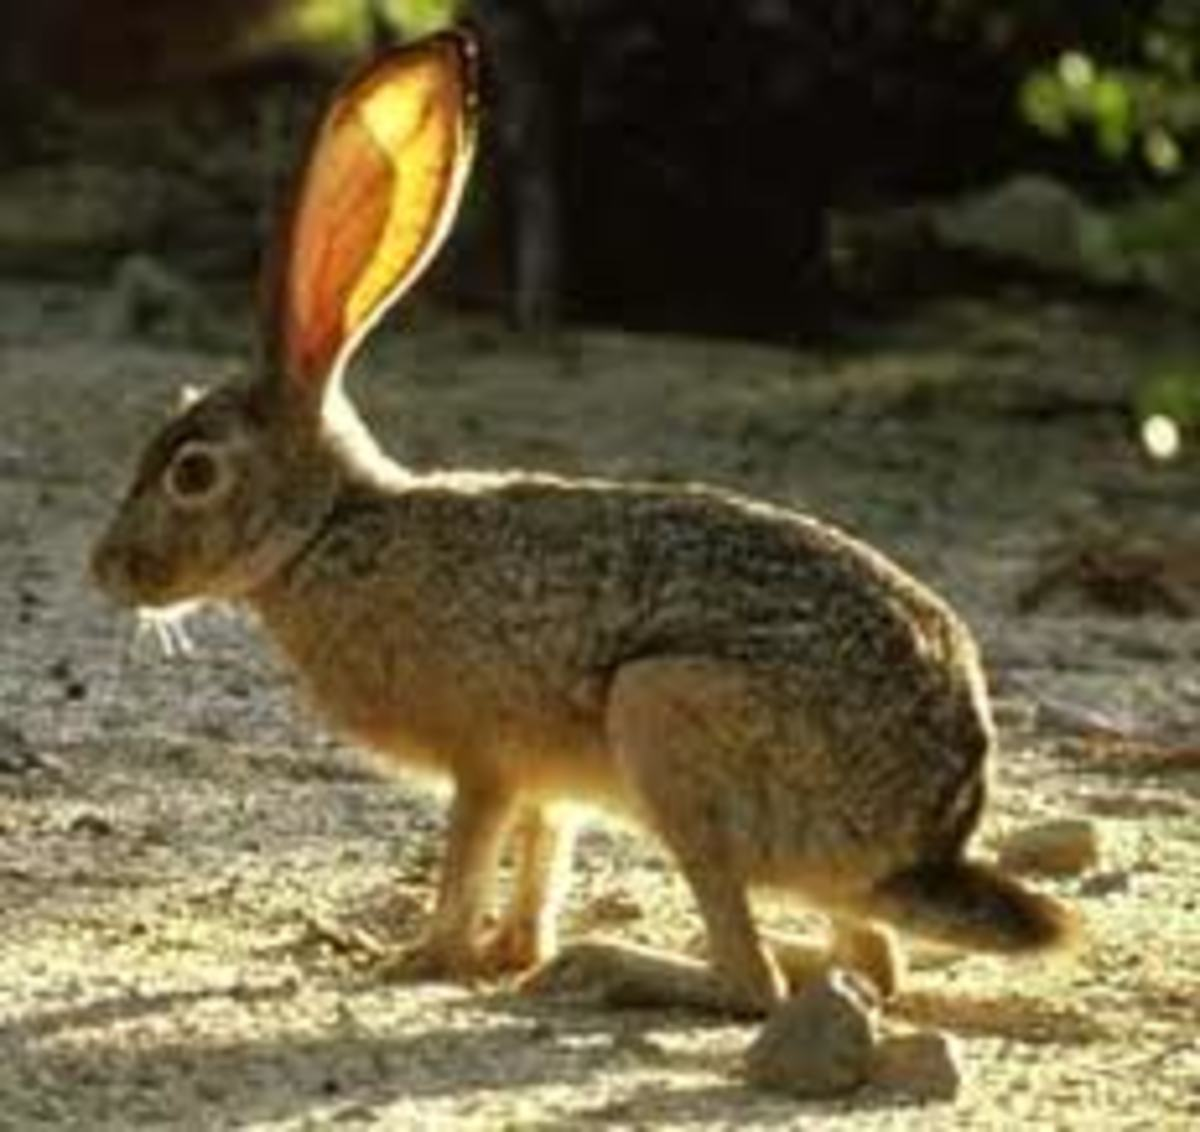 Texas Jack Rabbit. Not the Easter Bunny, but part of the legend!